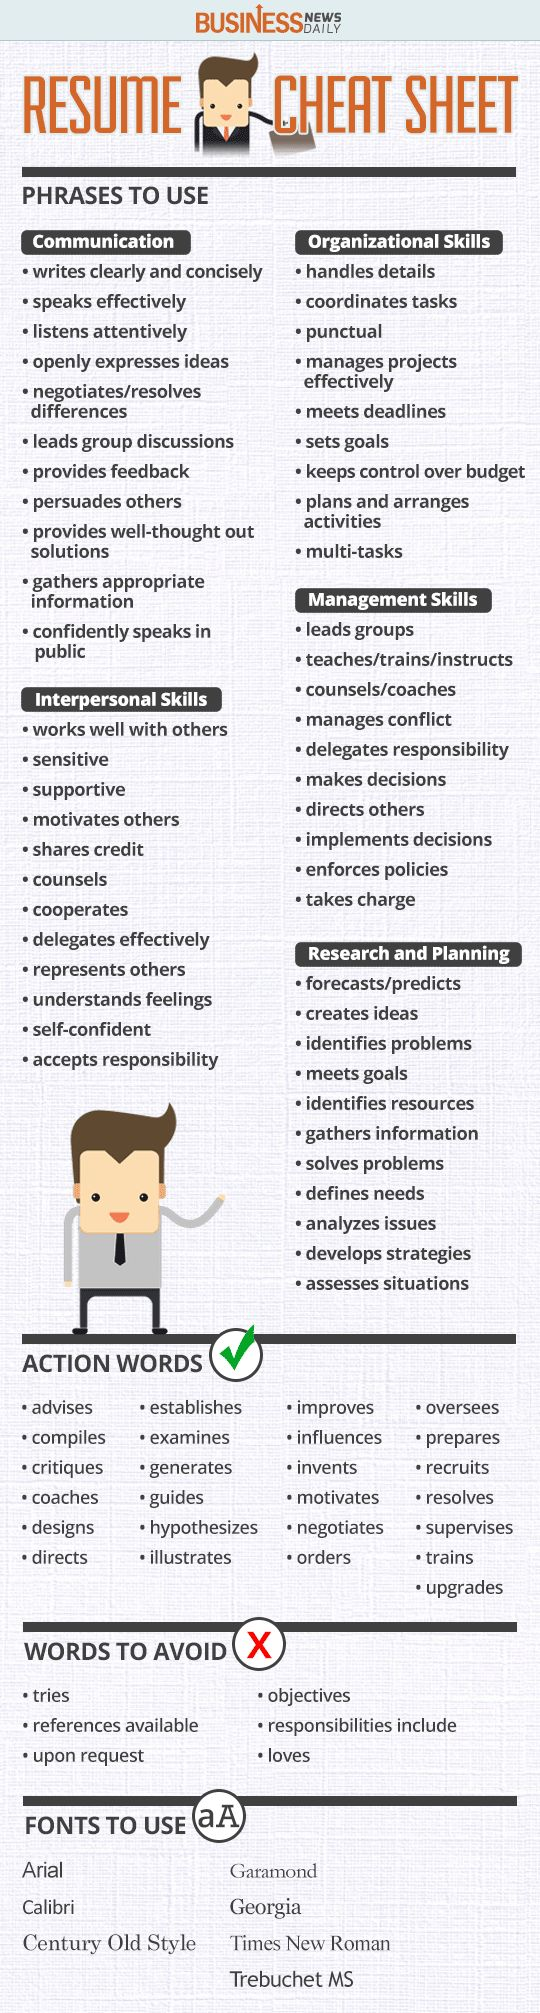 Opposenewapstandardsus  Pretty  Ideas About Resume On Pinterest  Cv Format Resume Cv And  With Extraordinary Resume Cheat Sheet Infographic Andrews Almost Done With A Complete Unit On Employment Which With Delightful Resume Summary Statement Also Objective In Resume In Addition References On A Resume And Sample Resume Templates As Well As Customer Service Skills Resume Additionally Resume Website From Pinterestcom With Opposenewapstandardsus  Extraordinary  Ideas About Resume On Pinterest  Cv Format Resume Cv And  With Delightful Resume Cheat Sheet Infographic Andrews Almost Done With A Complete Unit On Employment Which And Pretty Resume Summary Statement Also Objective In Resume In Addition References On A Resume From Pinterestcom